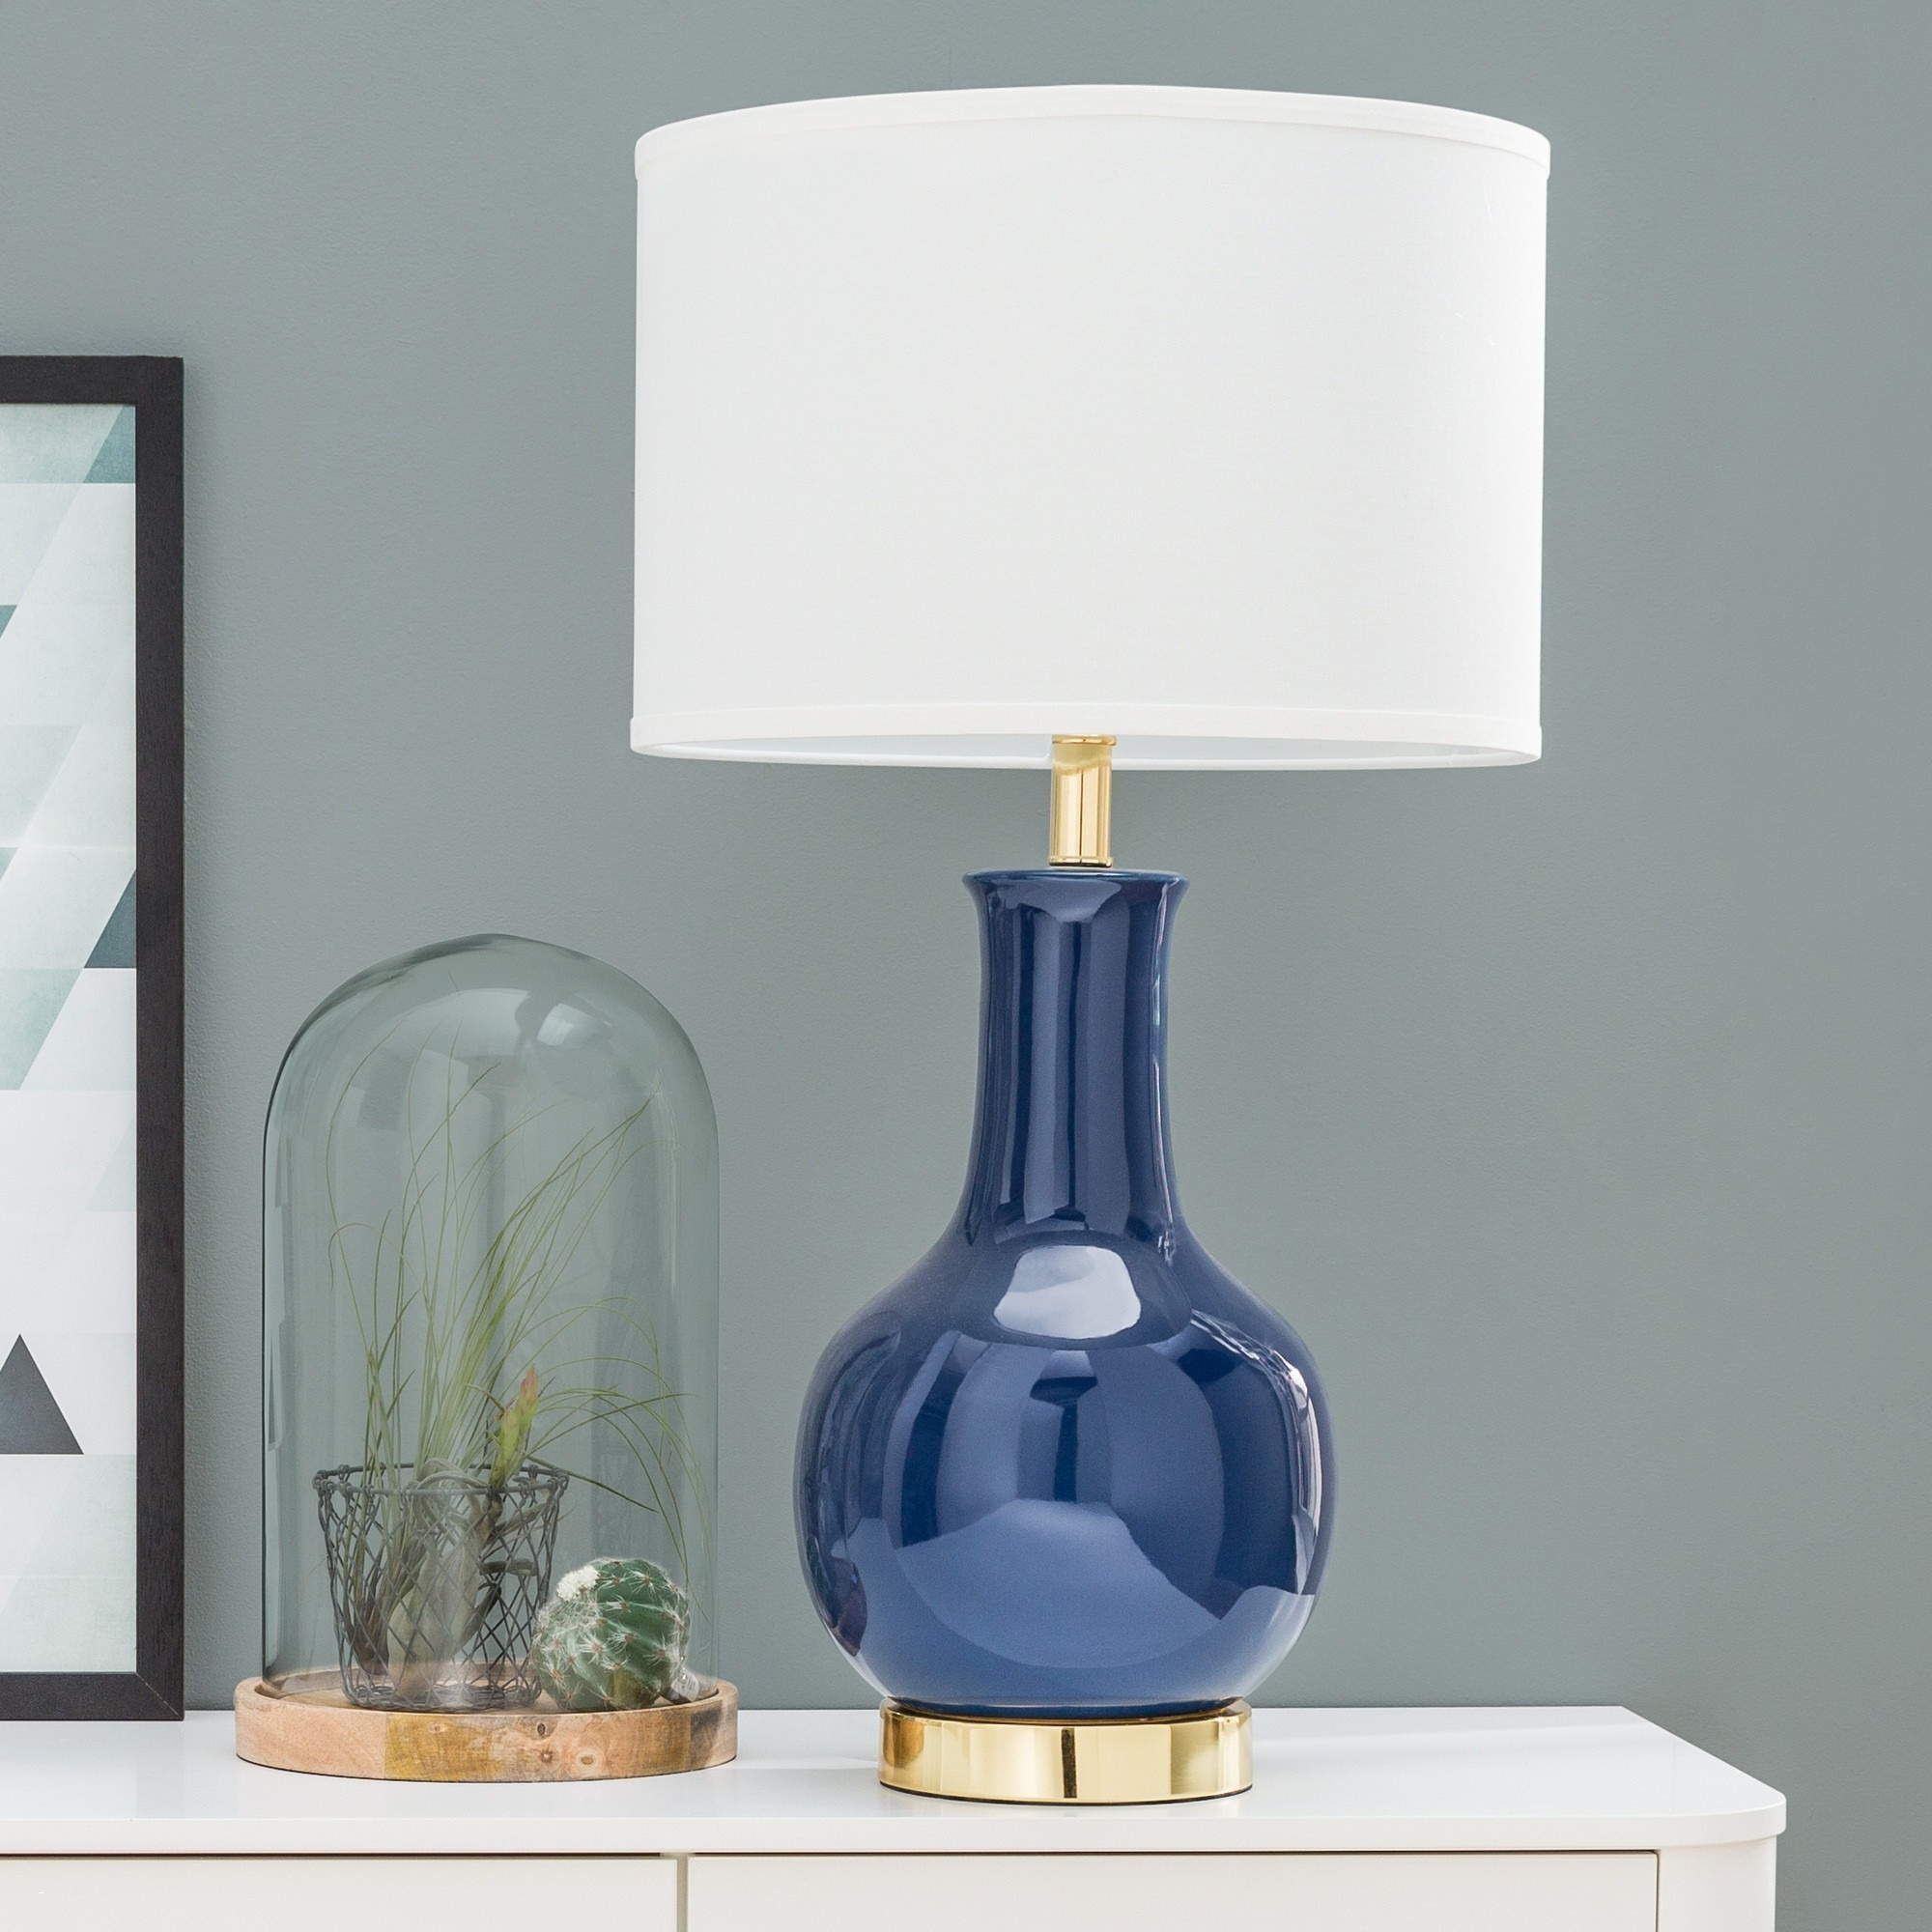 vase stands walmart of 34 beautiful glass table lamps for living room creative lighting throughout floor lamps with black shade unique arc floor lamp wayfair beautiful tag hallway lighting 0d